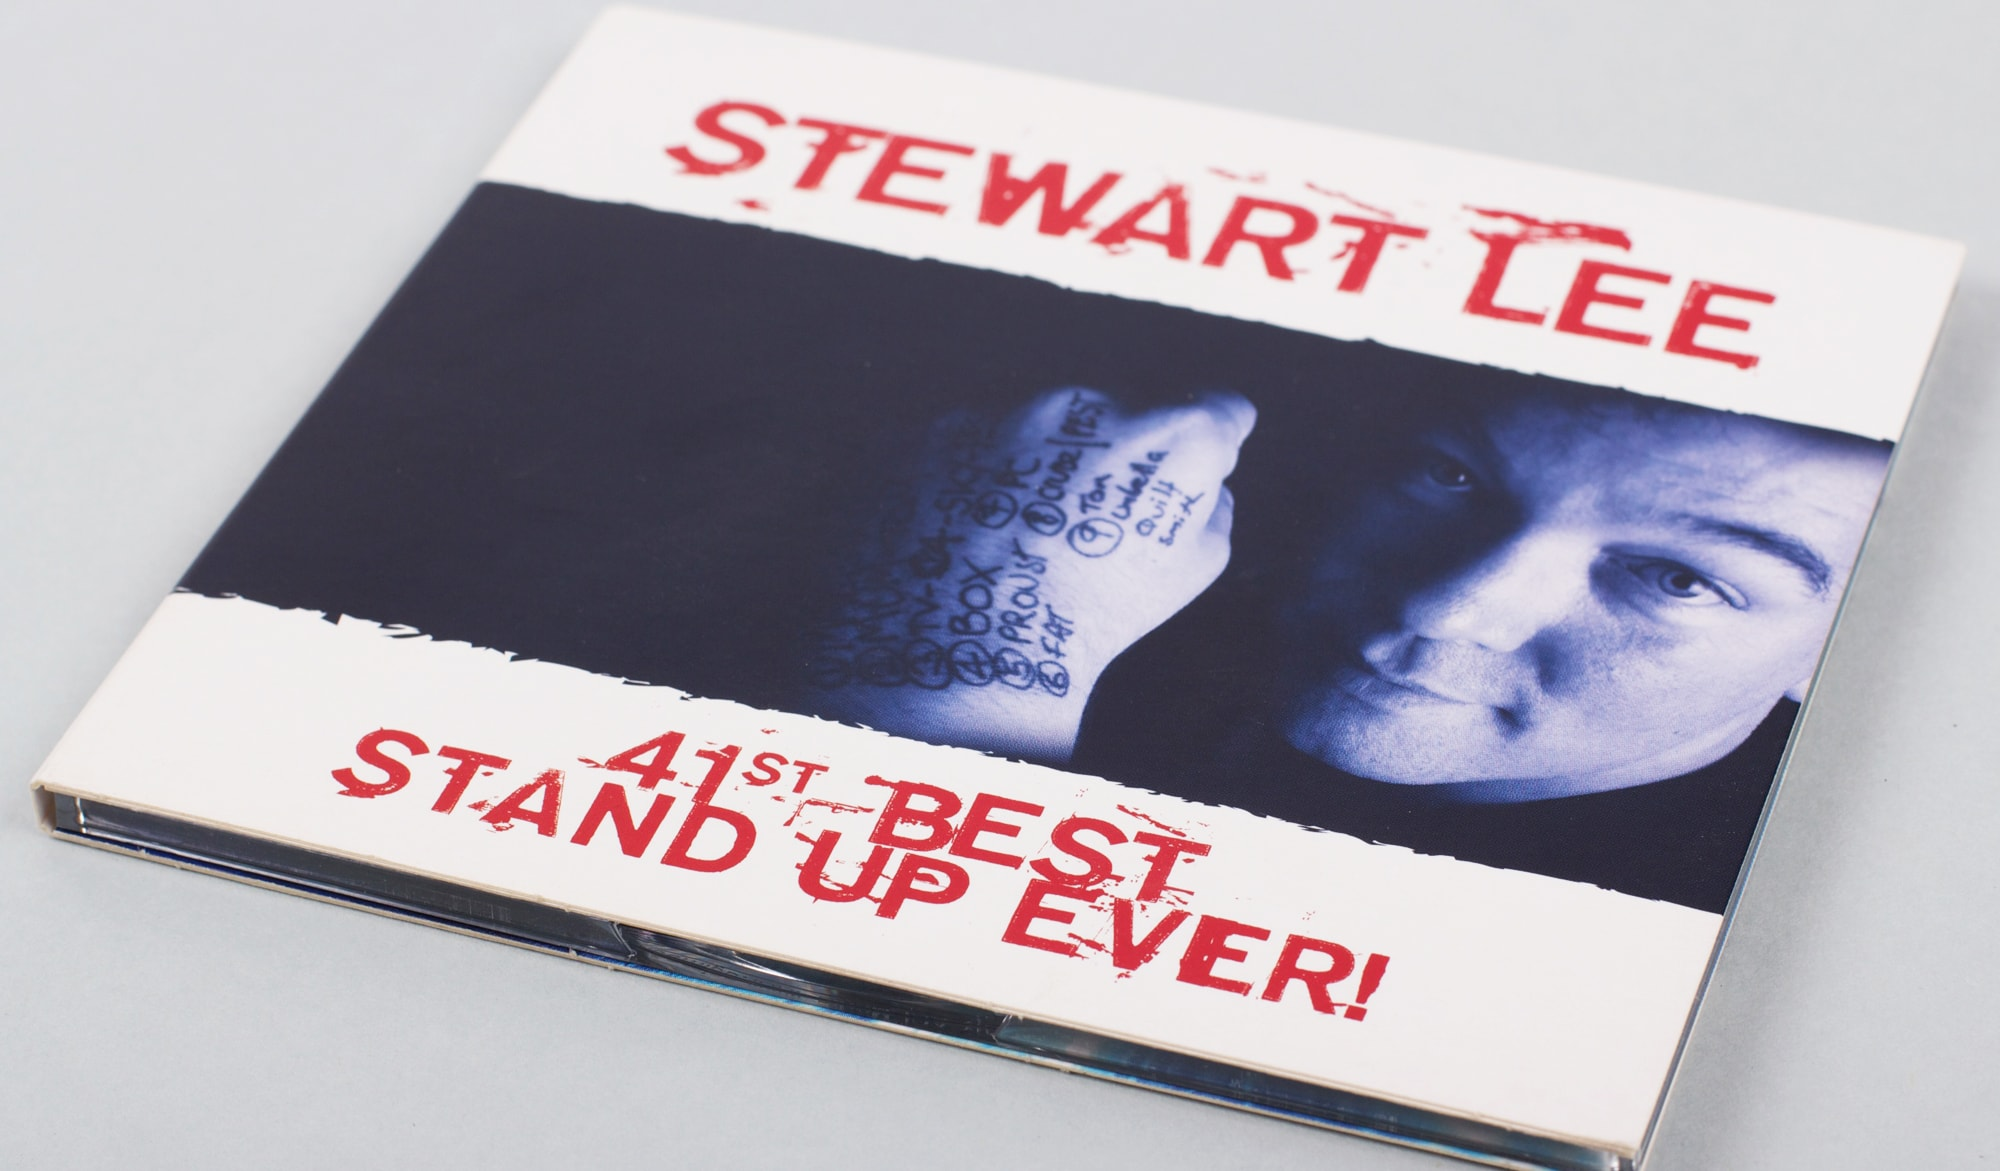 Stewart Lee - CD cover